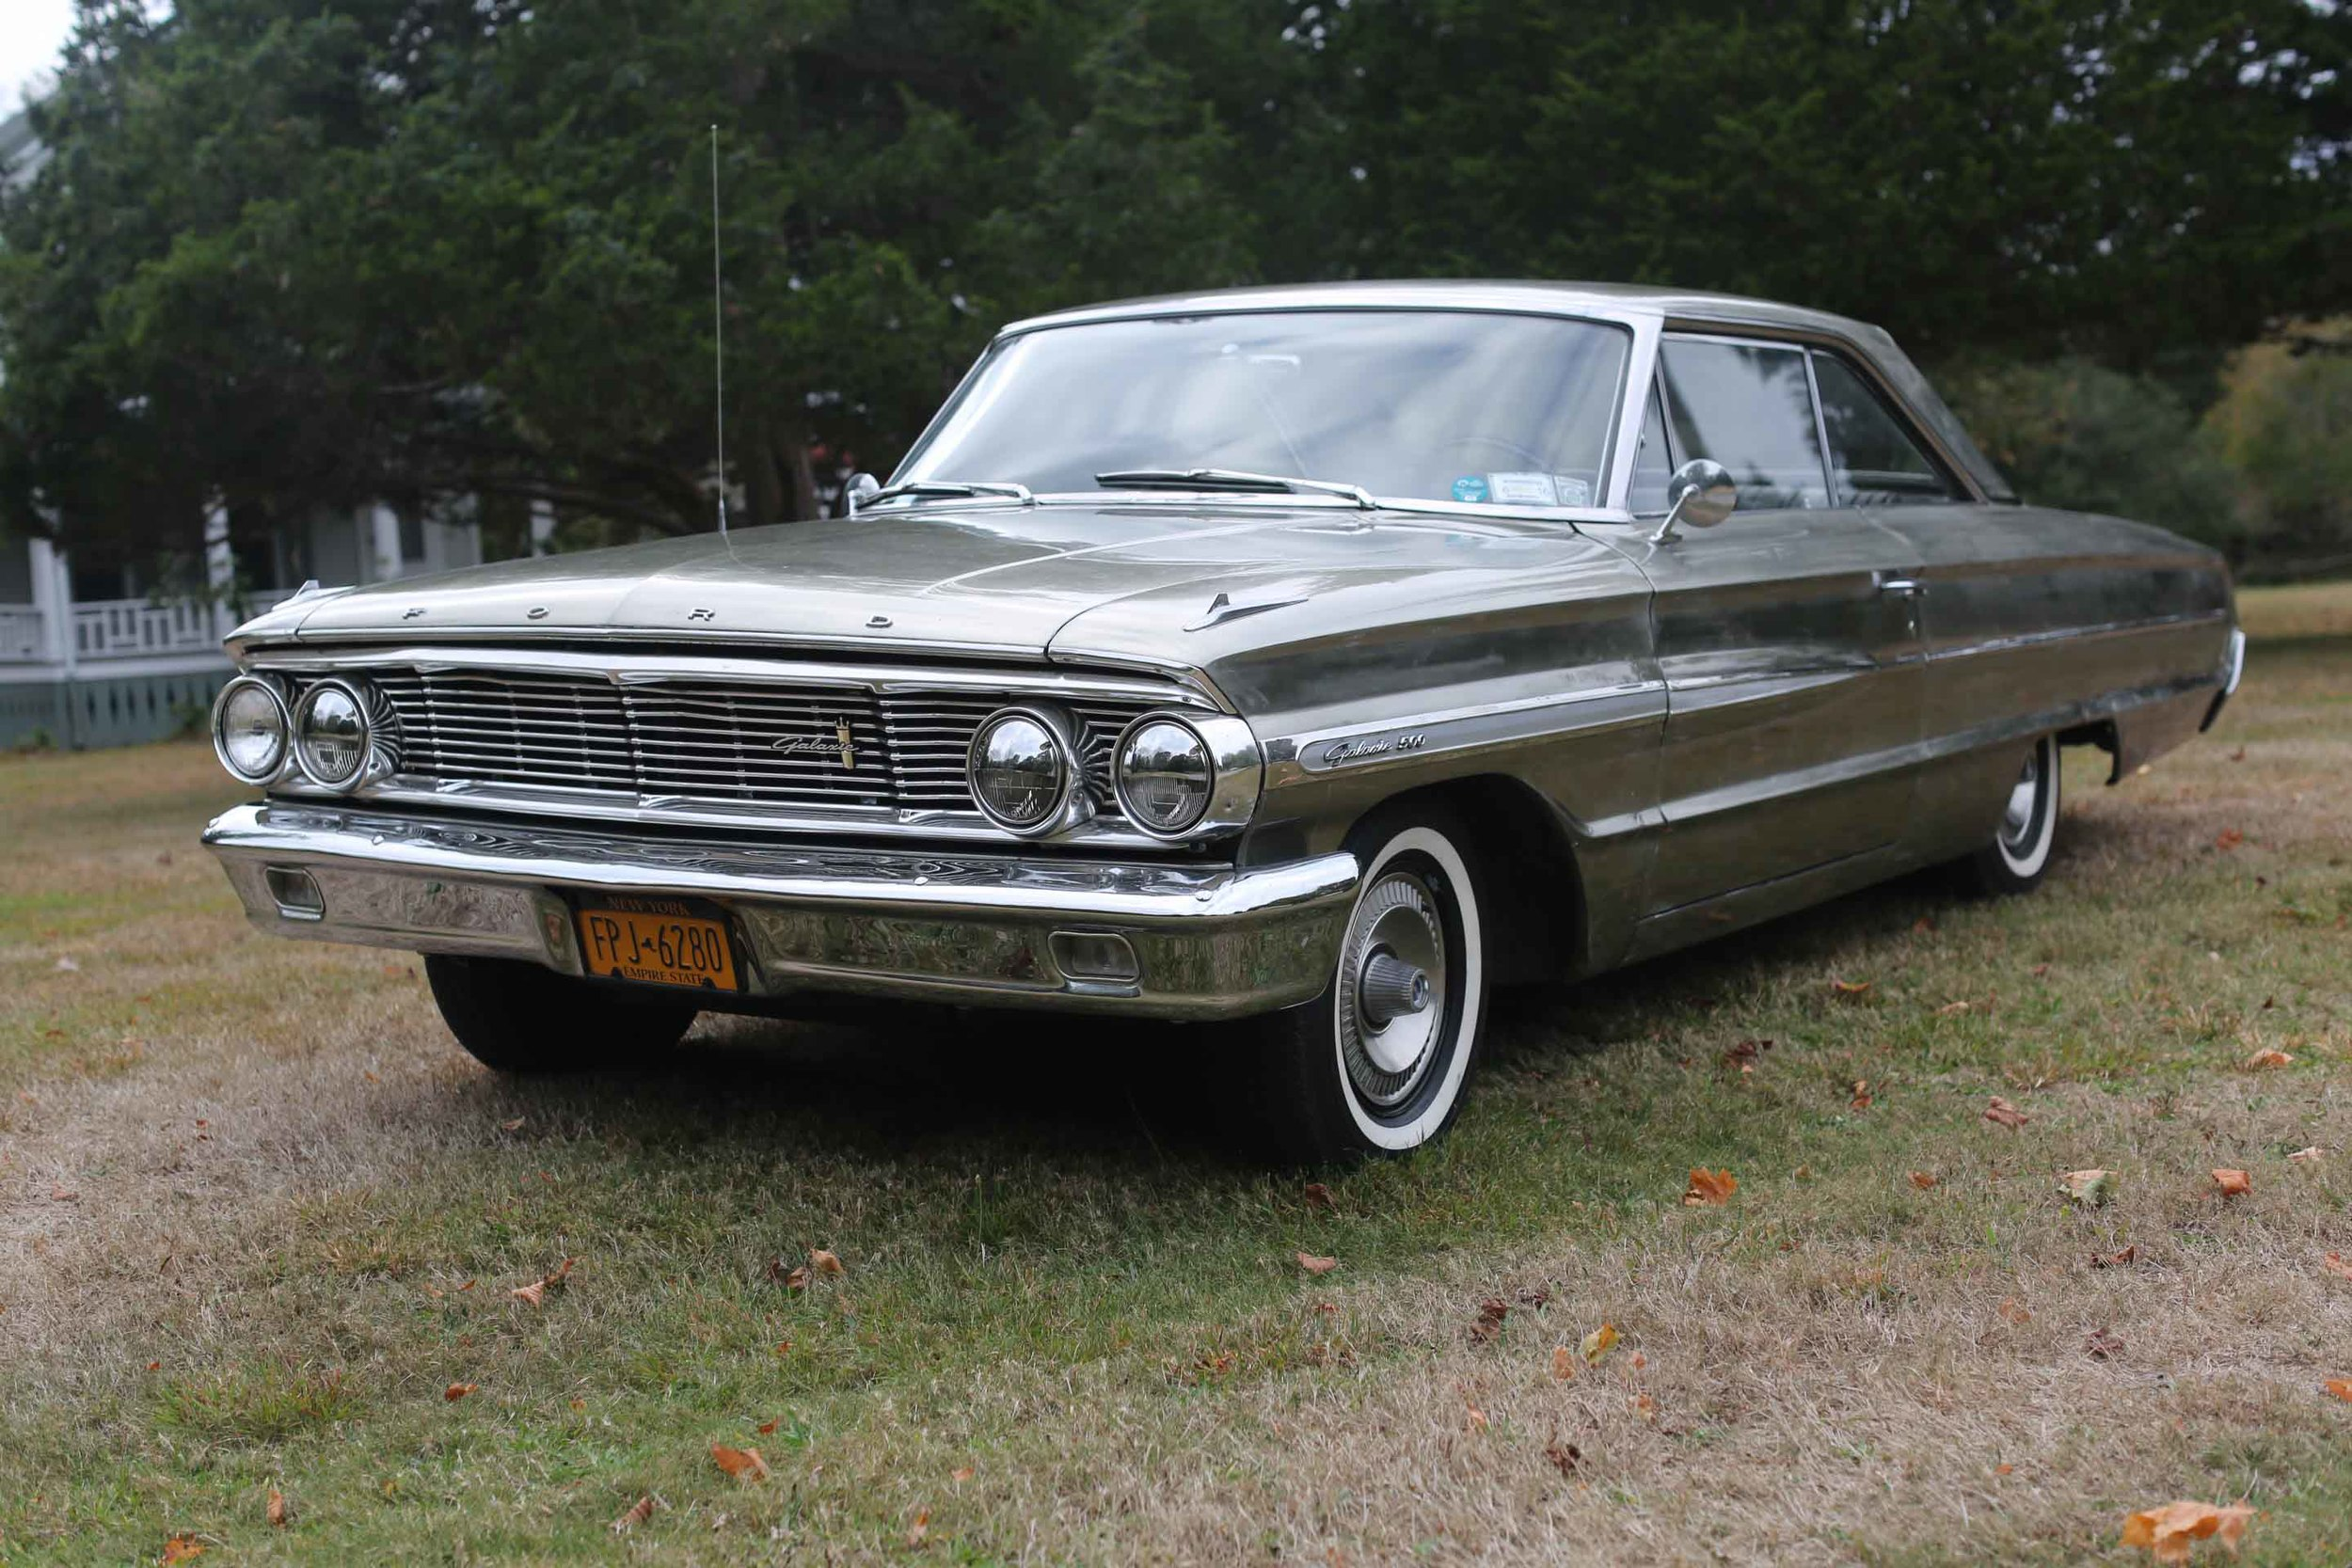 Olivier Mosset, Jacob Kassay and ServaneMary, Ford Galaxie (Car), 2013;1964 Ford Galaxie